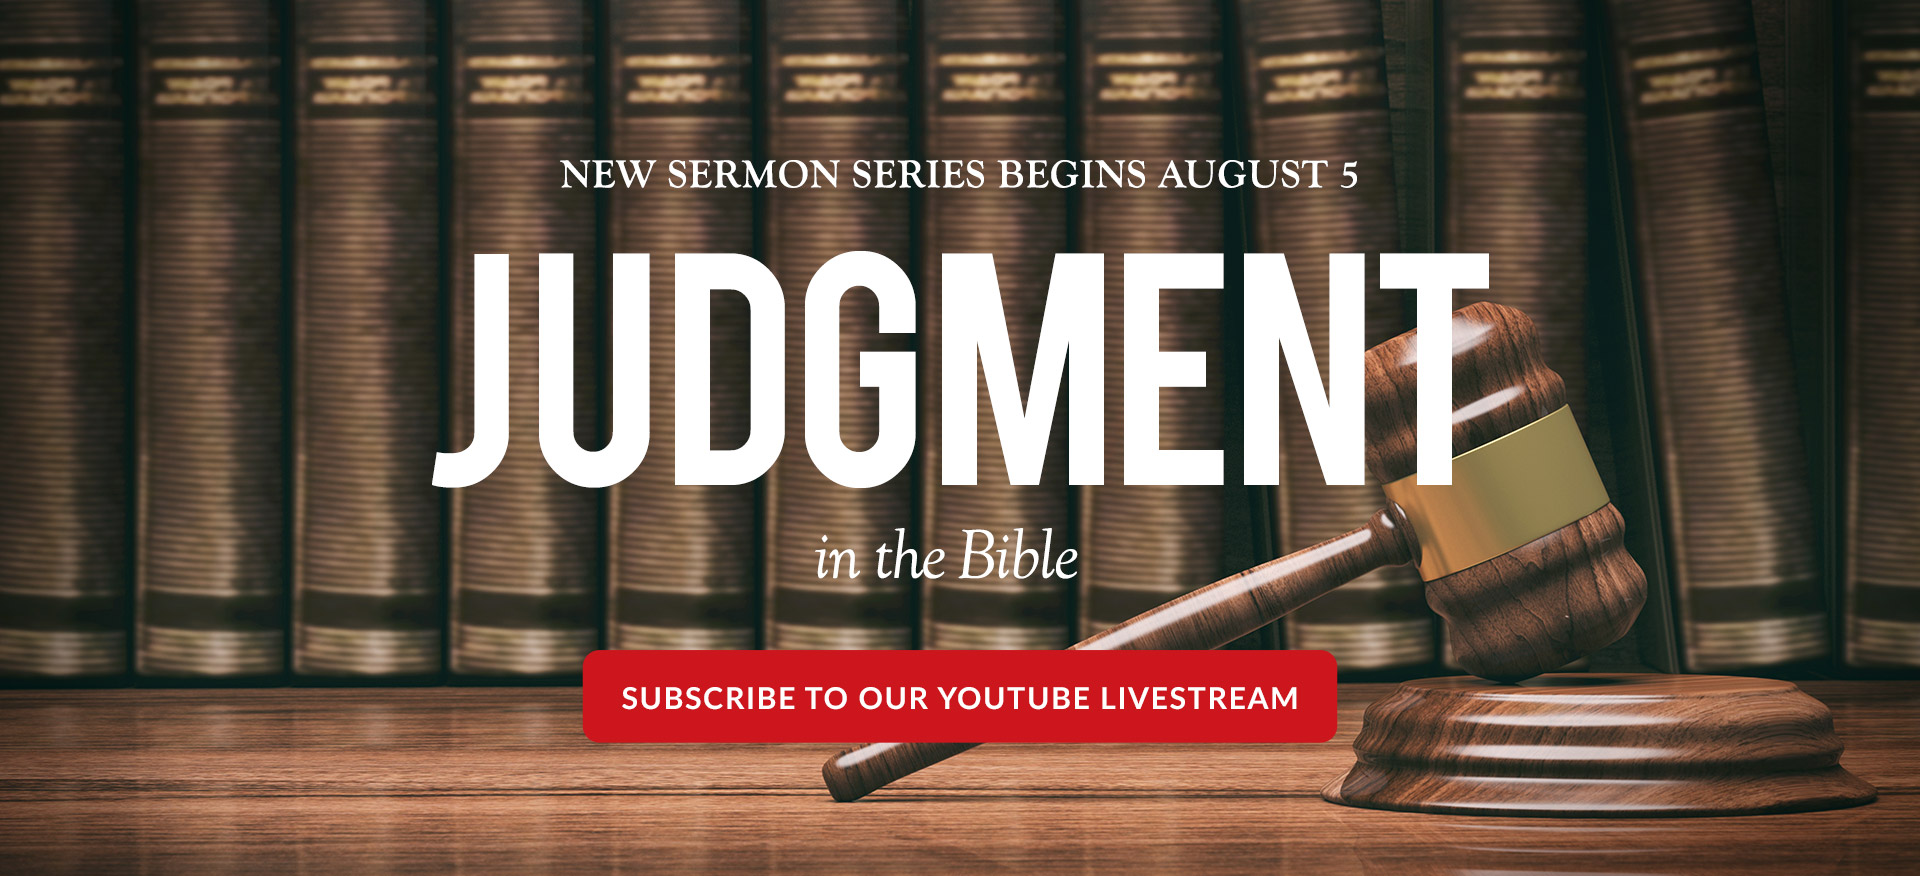 New Sermon Series on Judgment in the Bible - Subscribe to our YouTube Livestream